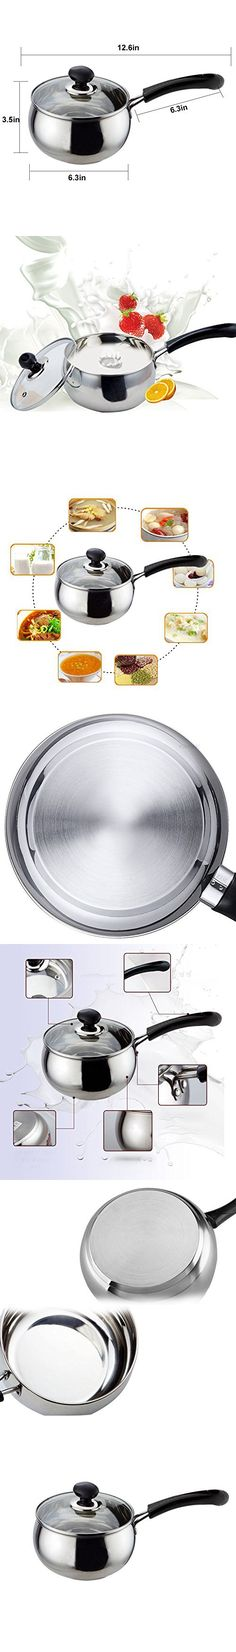 Stainless Steel Kitchen Pot Saucepan Cookware with Lid, Silver Tone, 1.5L